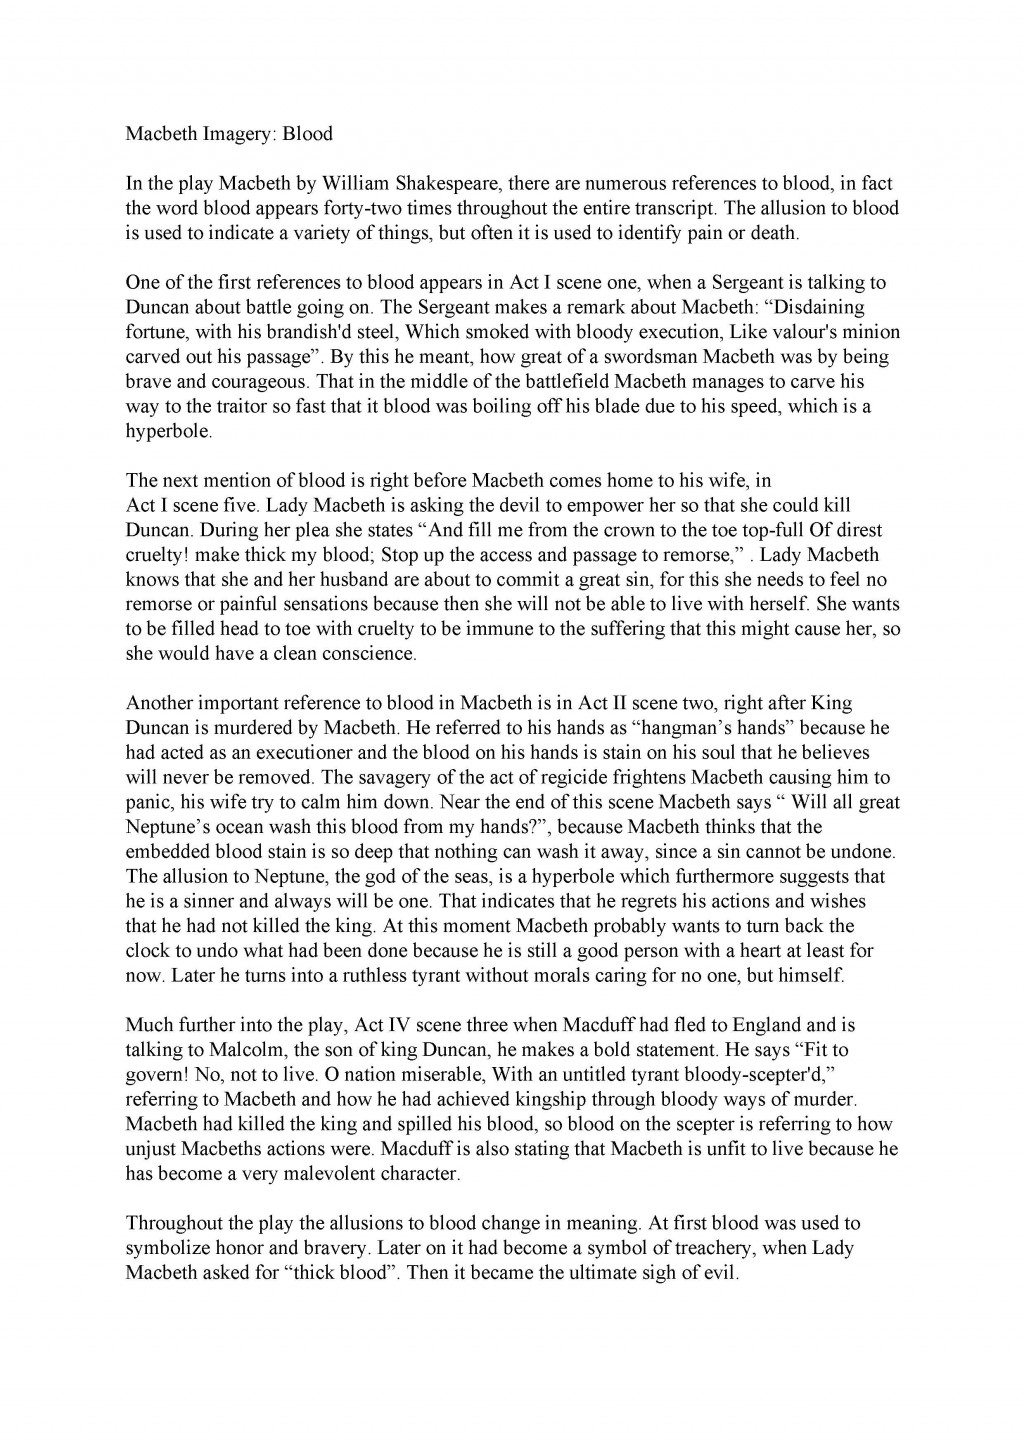 017 Macbeth Essay Sample How To Essays Excellent Write An Expository For 4th Grade Make Longer With Words Start Introduction Large